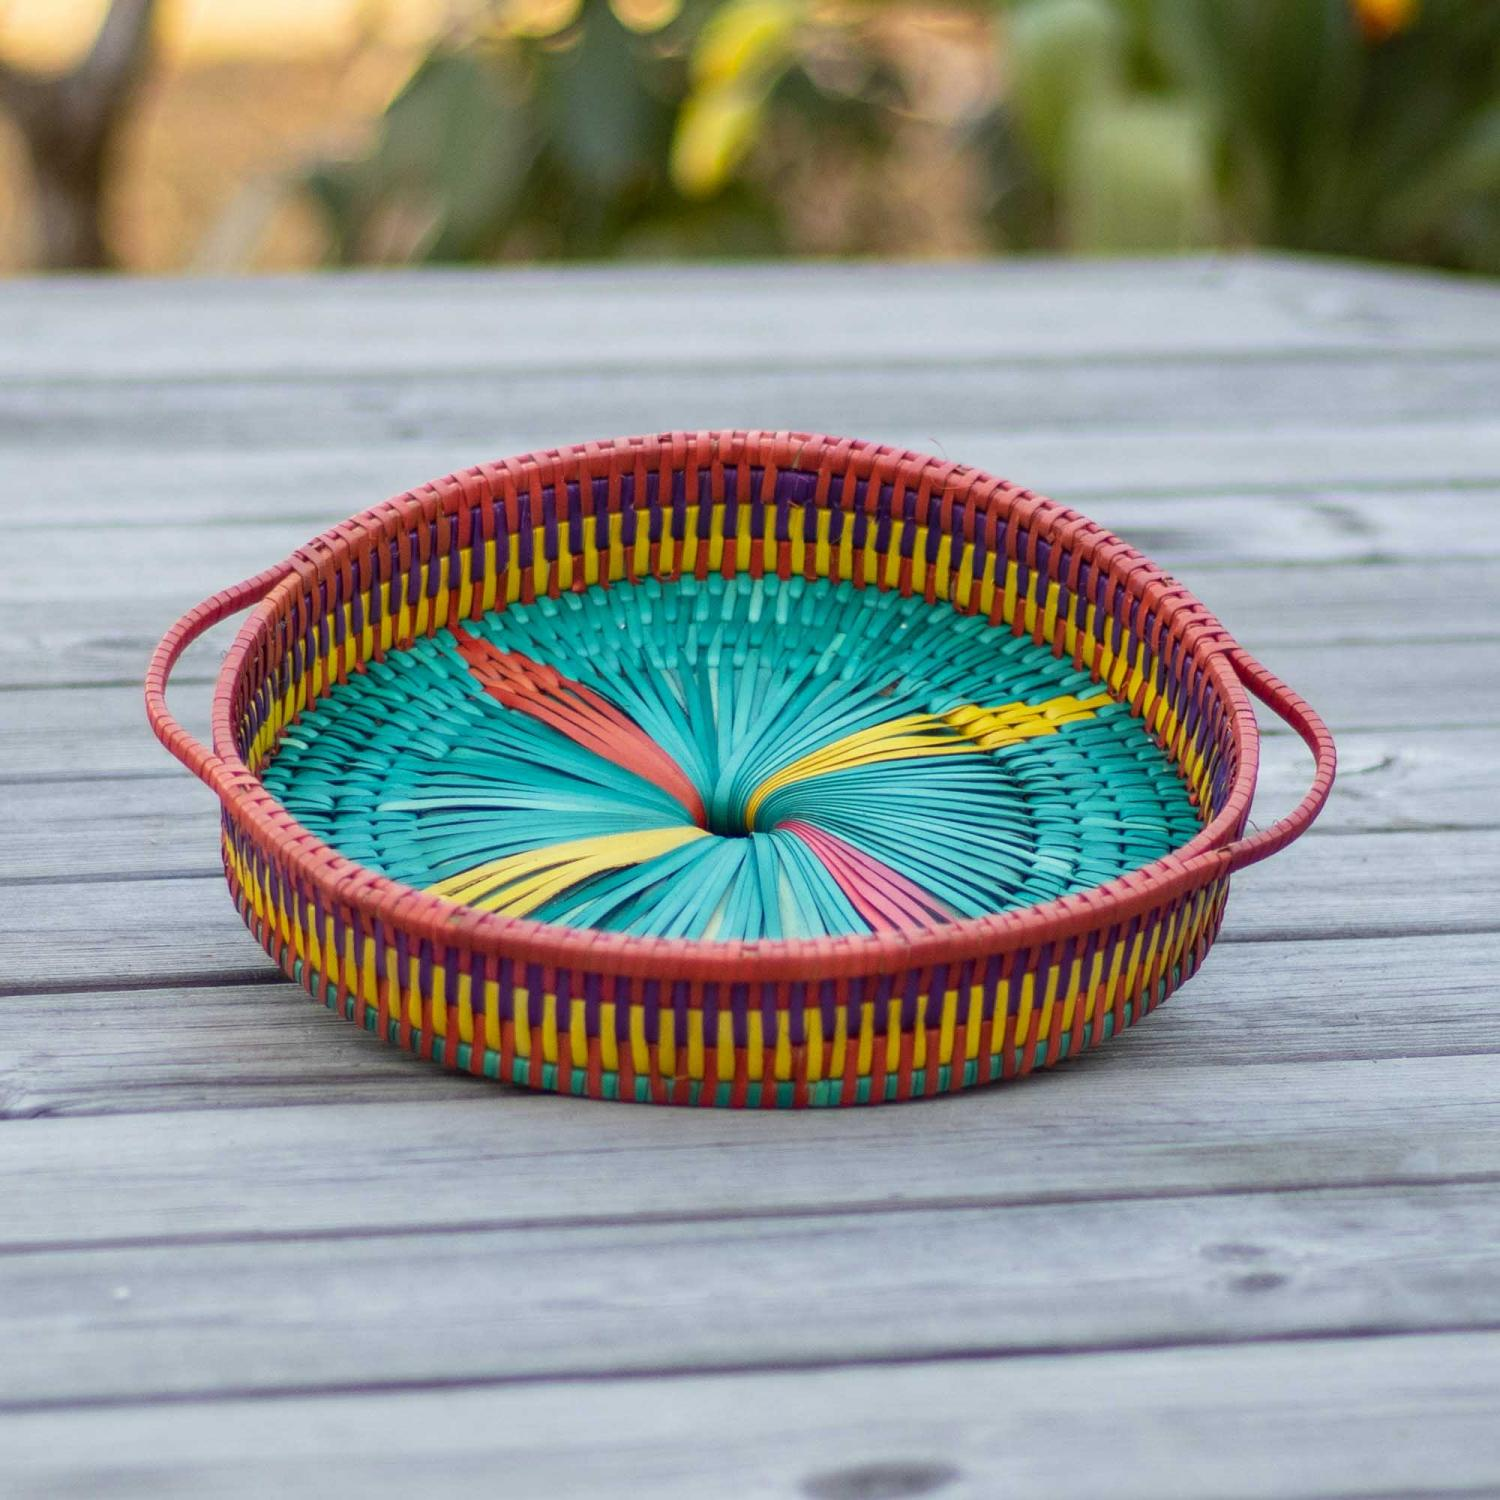 Palm leaf tray in rainbow colors and red handle